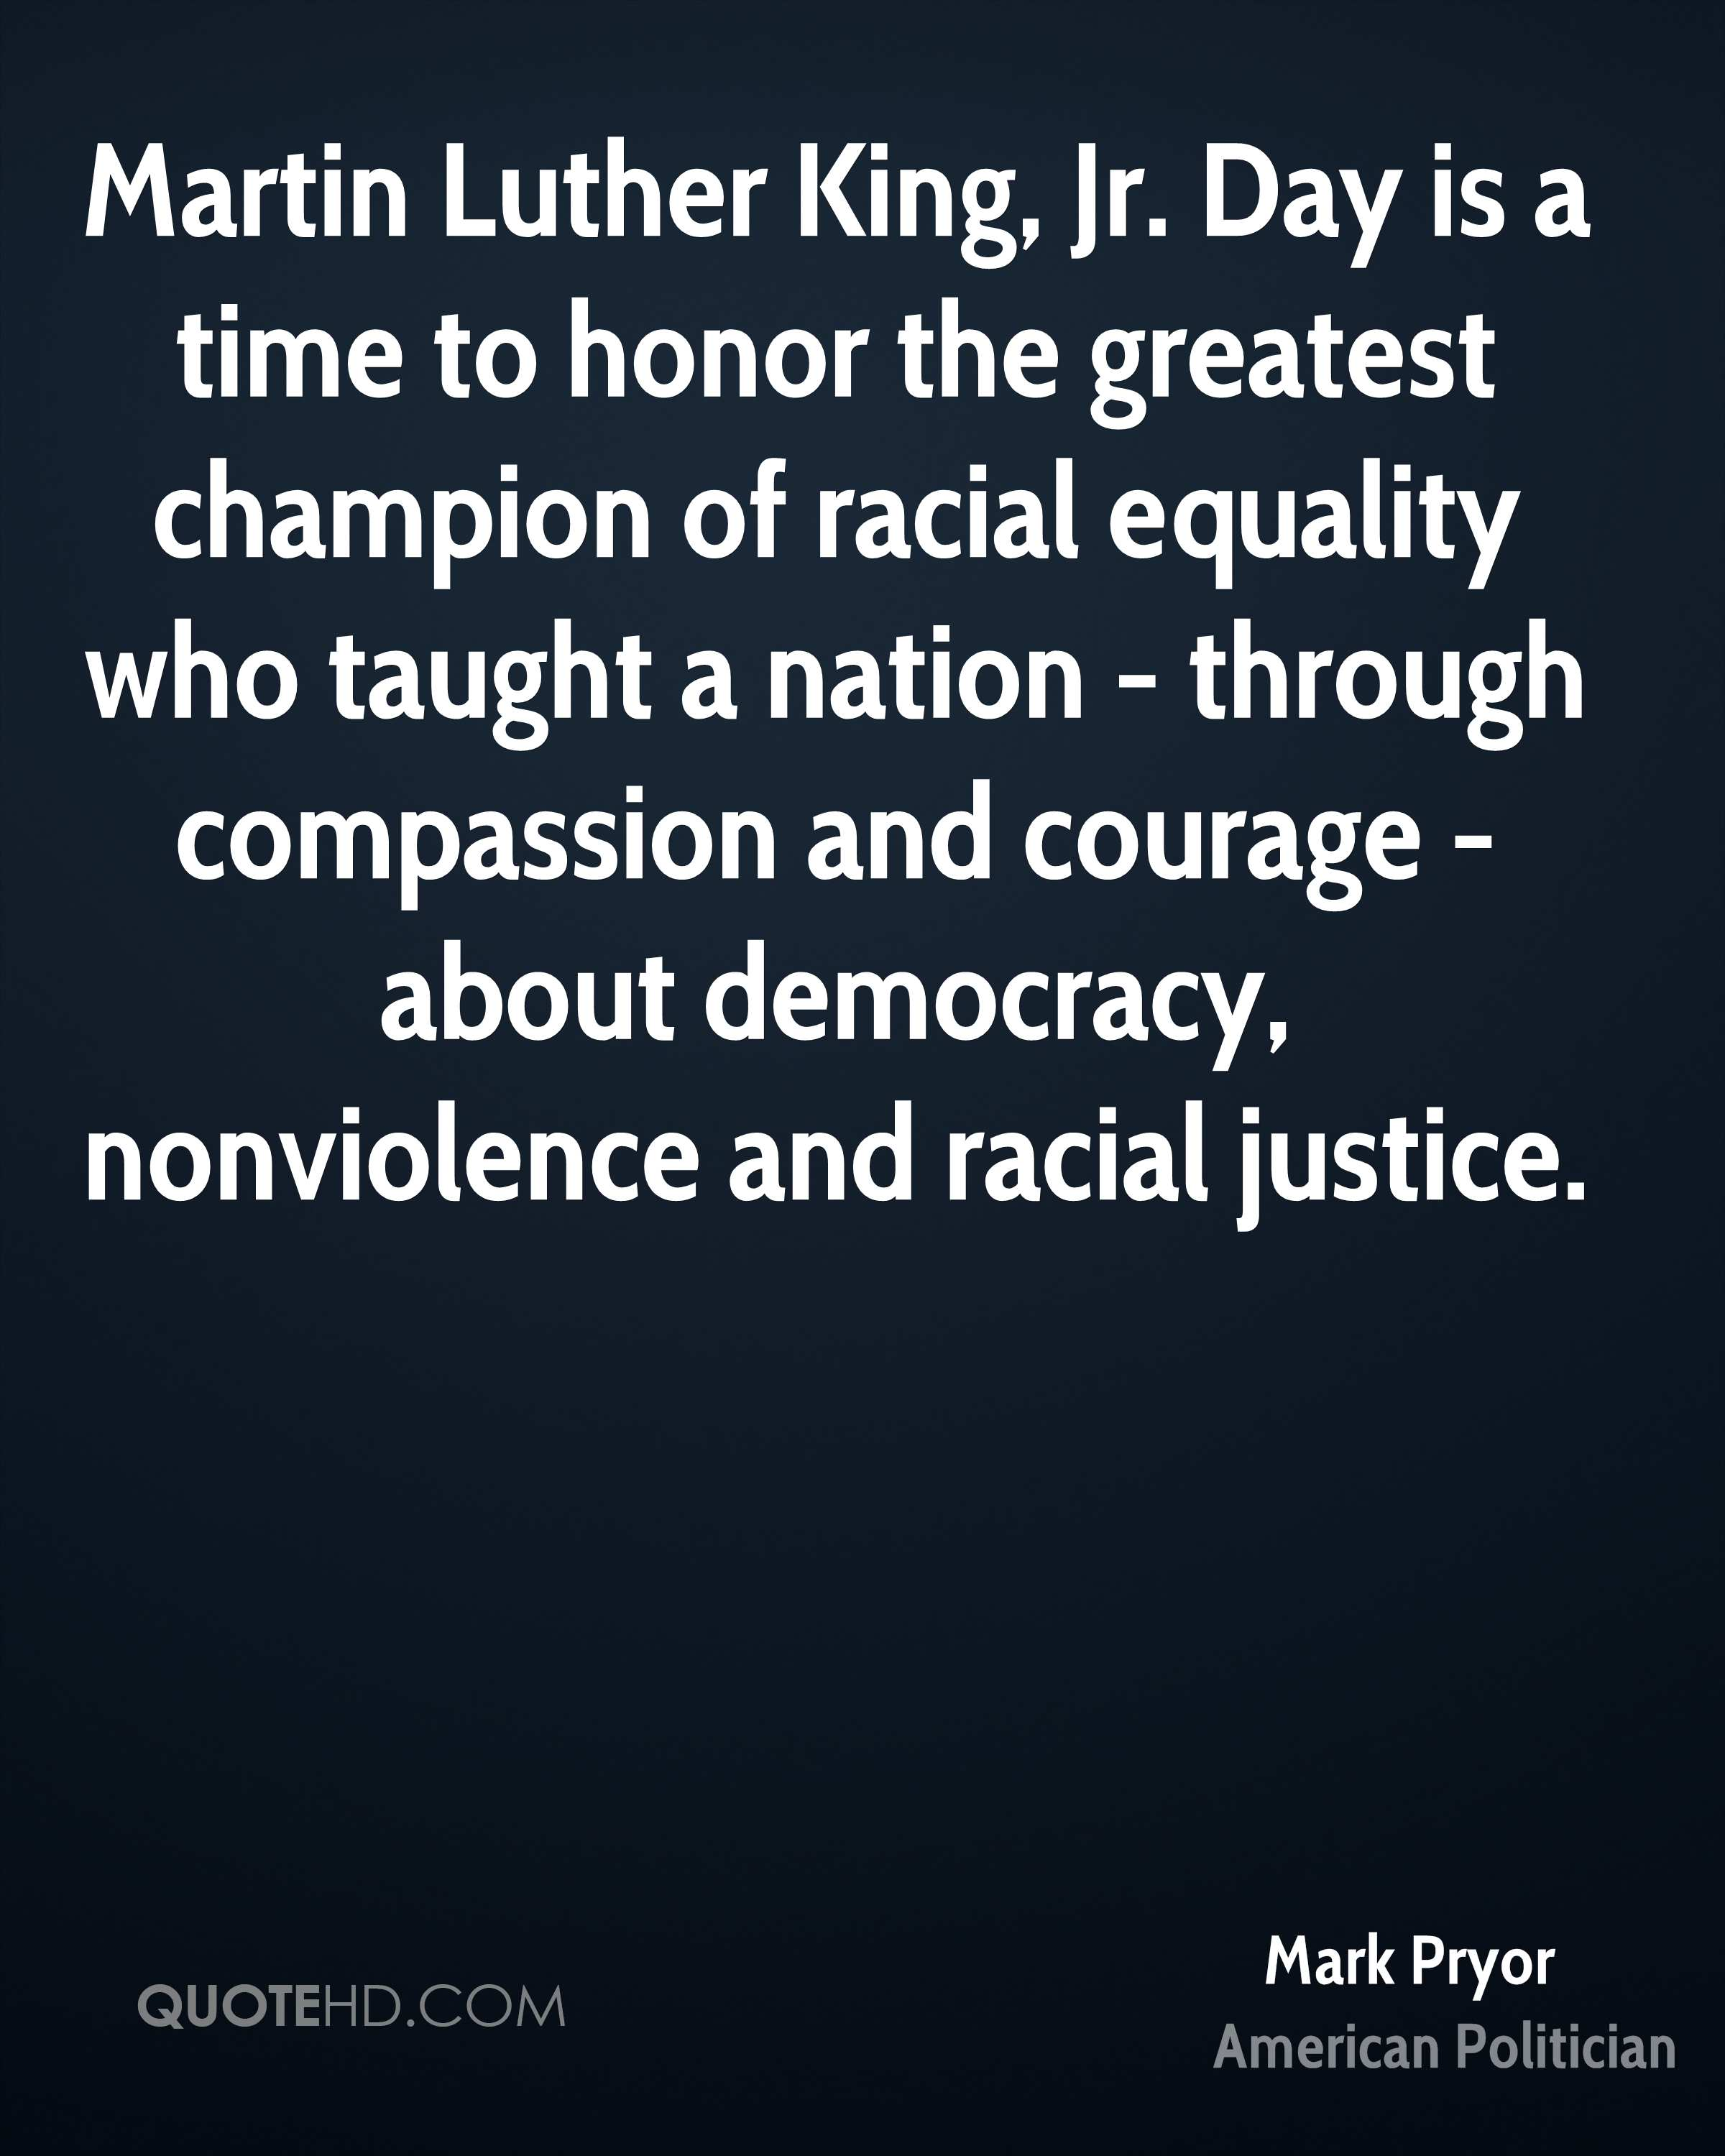 Martin Luther King, Jr. Day is a time to honor the greatest champion of racial equality who taught a nation - through compassion and courage - about democracy, nonviolence and racial justice.